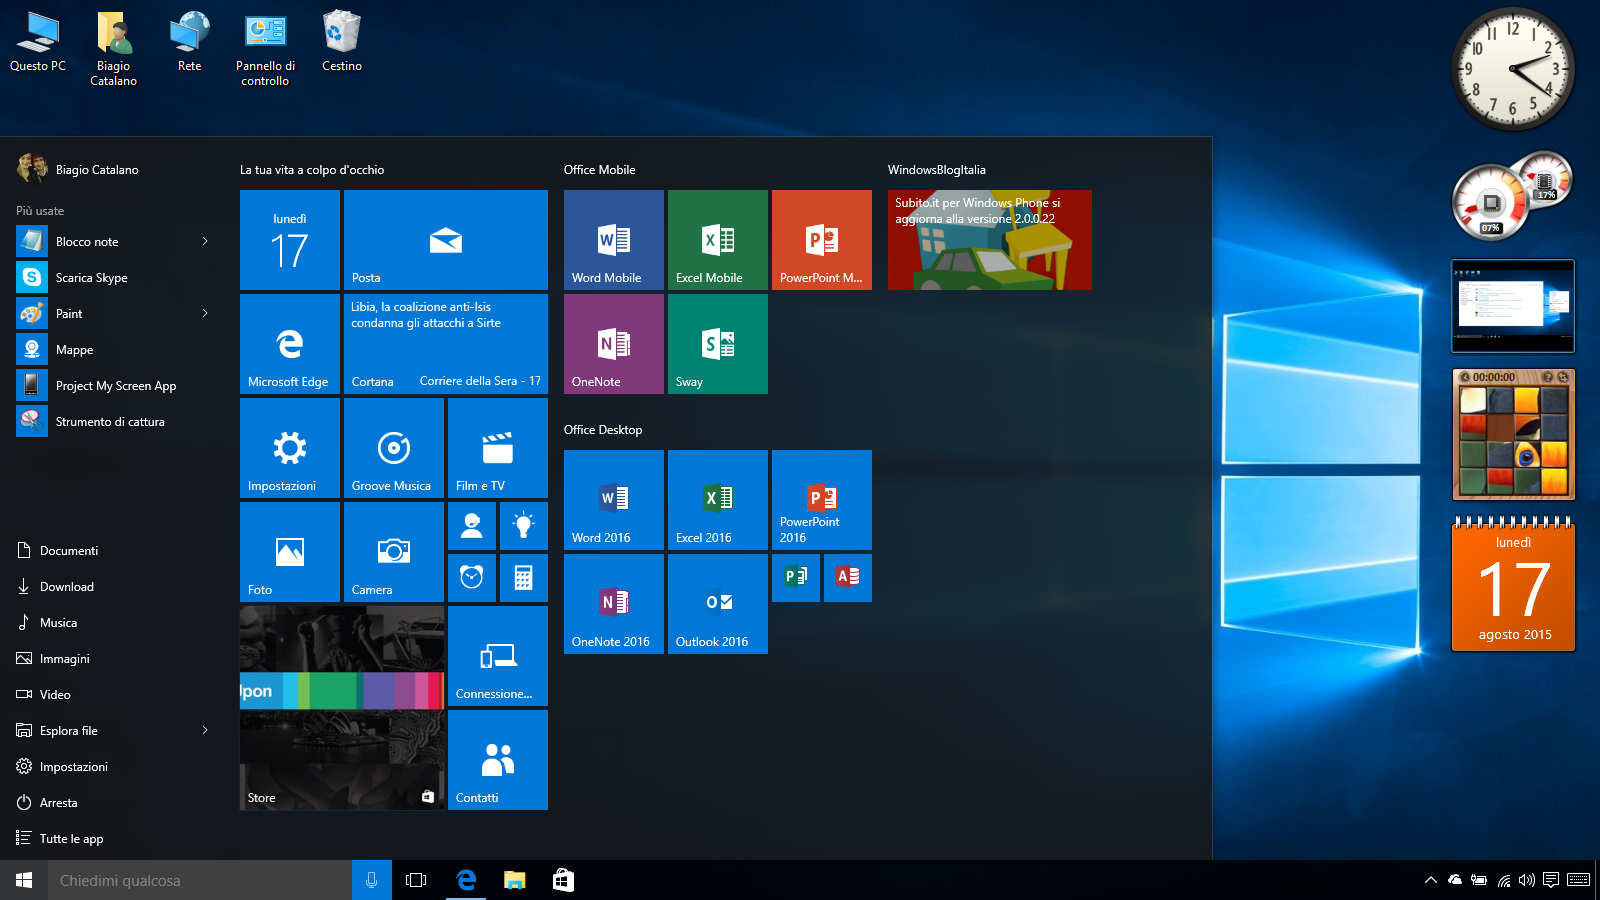 Calendario Windows 10 Su Desktop.Come Avere I Gadget Di Windows 7 Sul Desktop Di Windows 10